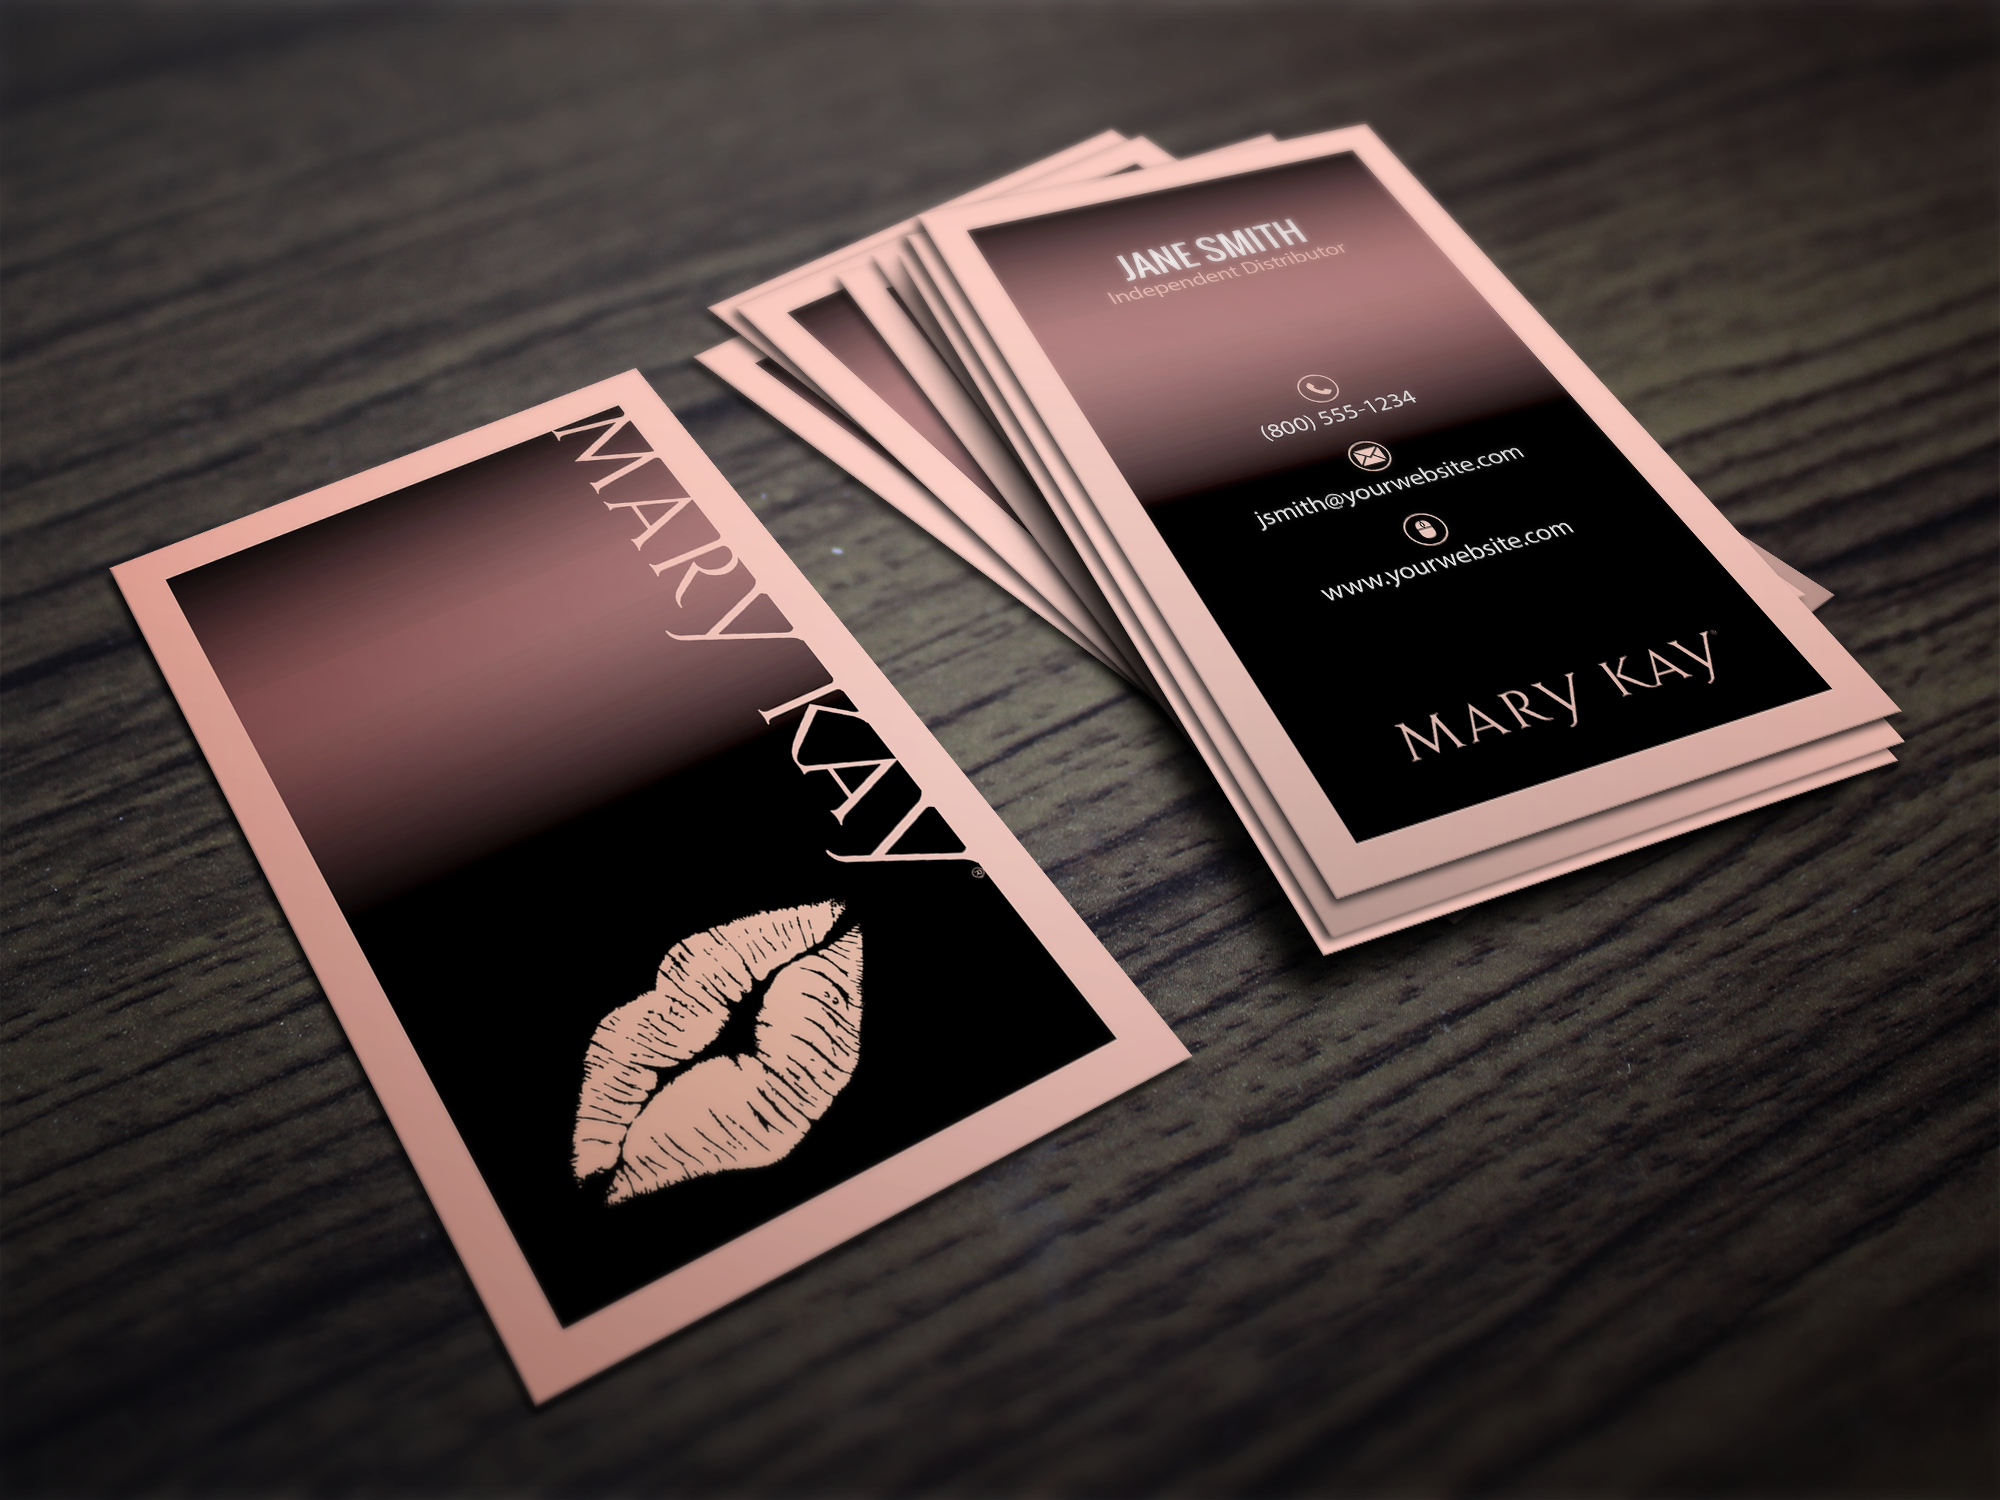 Cute business card template designs for mary kay cosmetic cute business card template designs for mary kay cosmetic consultants cute pink kiss magicingreecefo Images